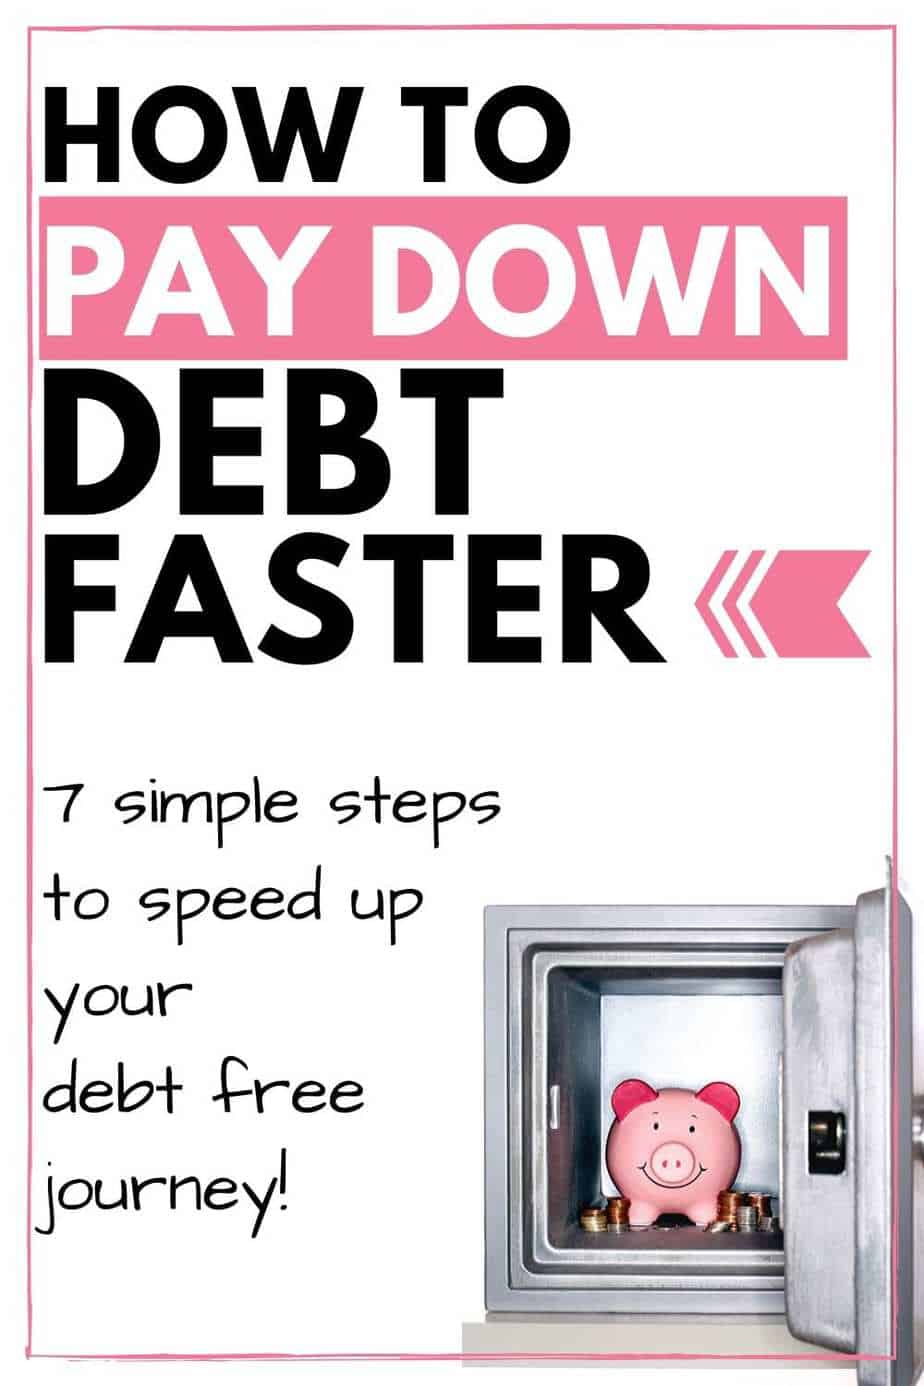 How to pay down debt faster